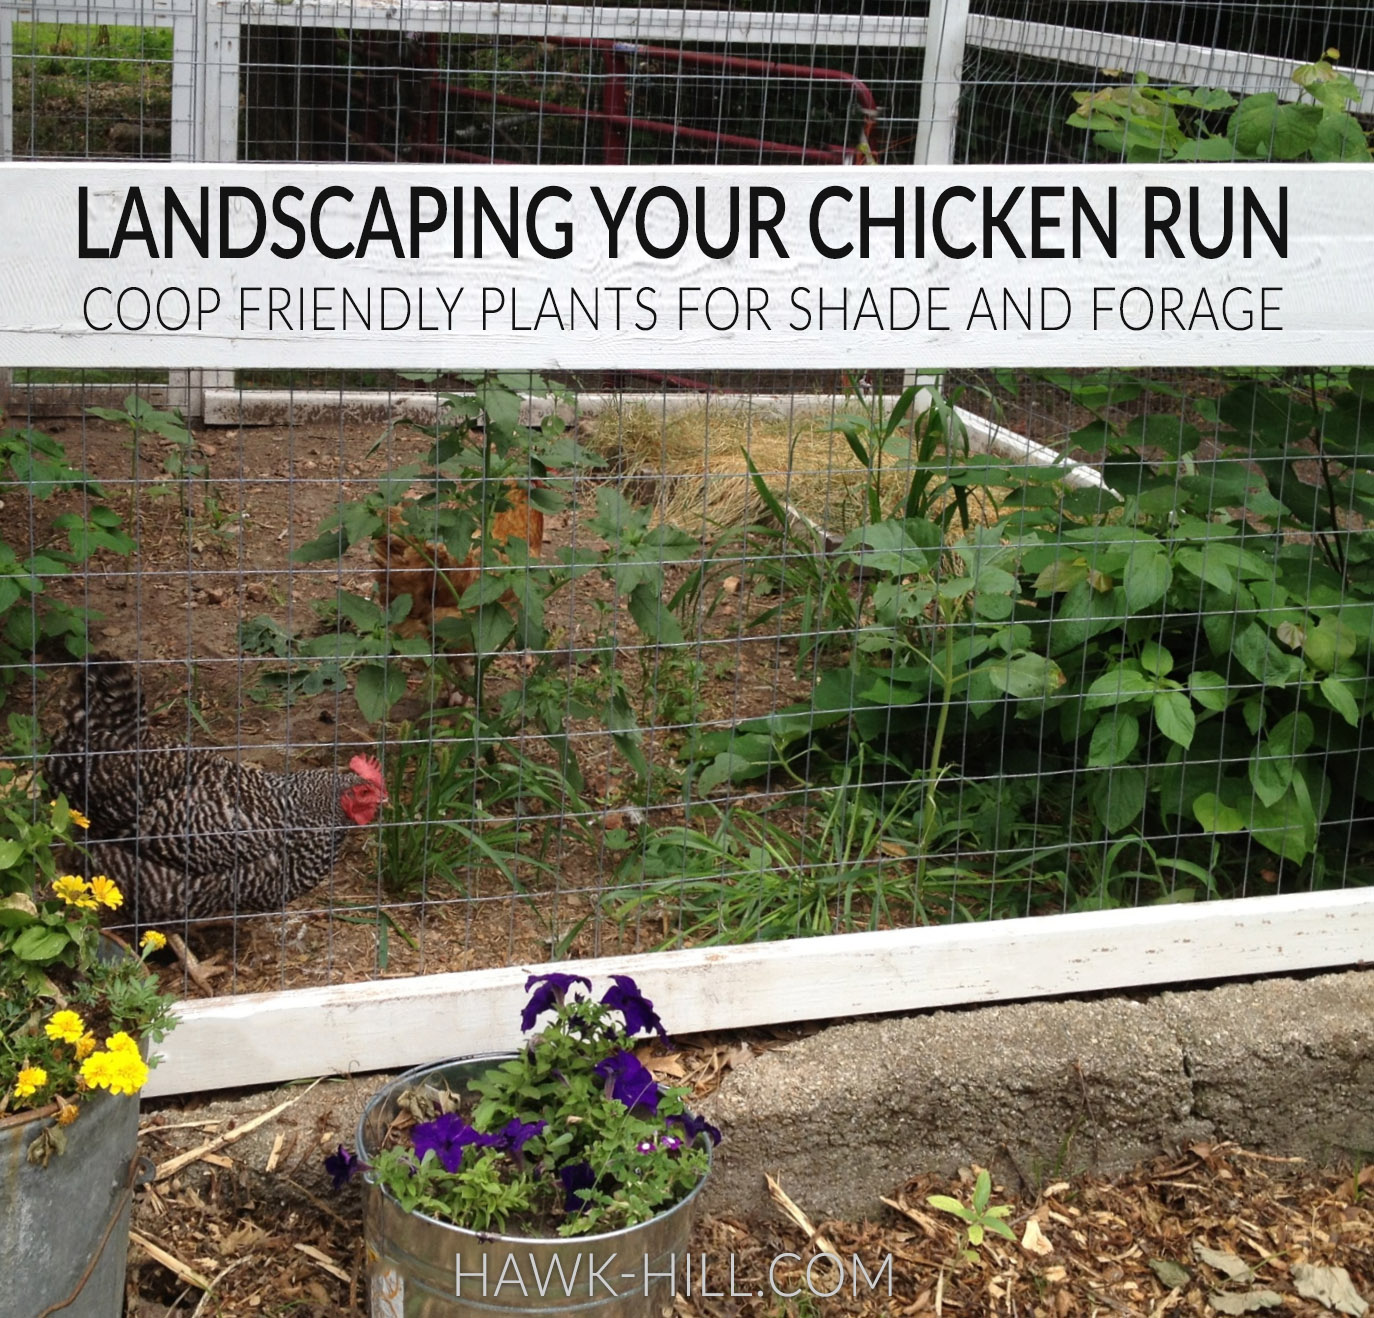 choosing tough plants for your chicken coop's run helps provide chickens with forage and shelter from heat and predators